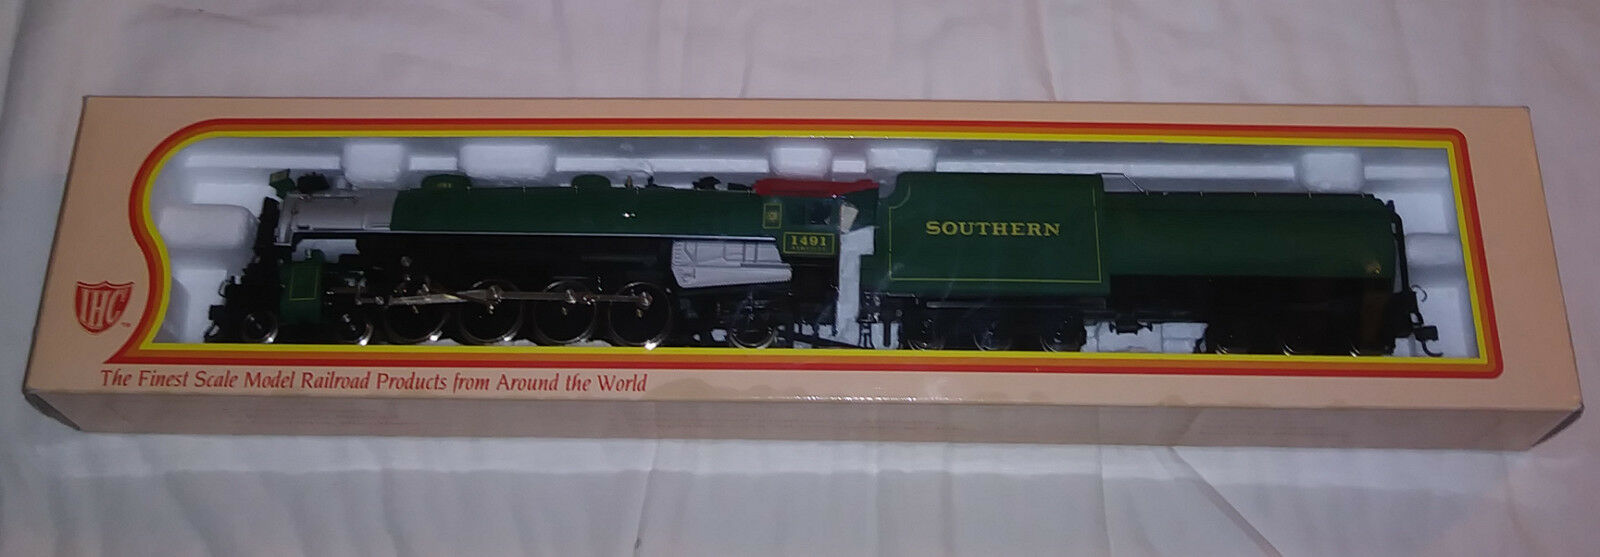 Collectible IHC M626 HO Scale Mountain Southern Steam Locomotive 1491 NIB